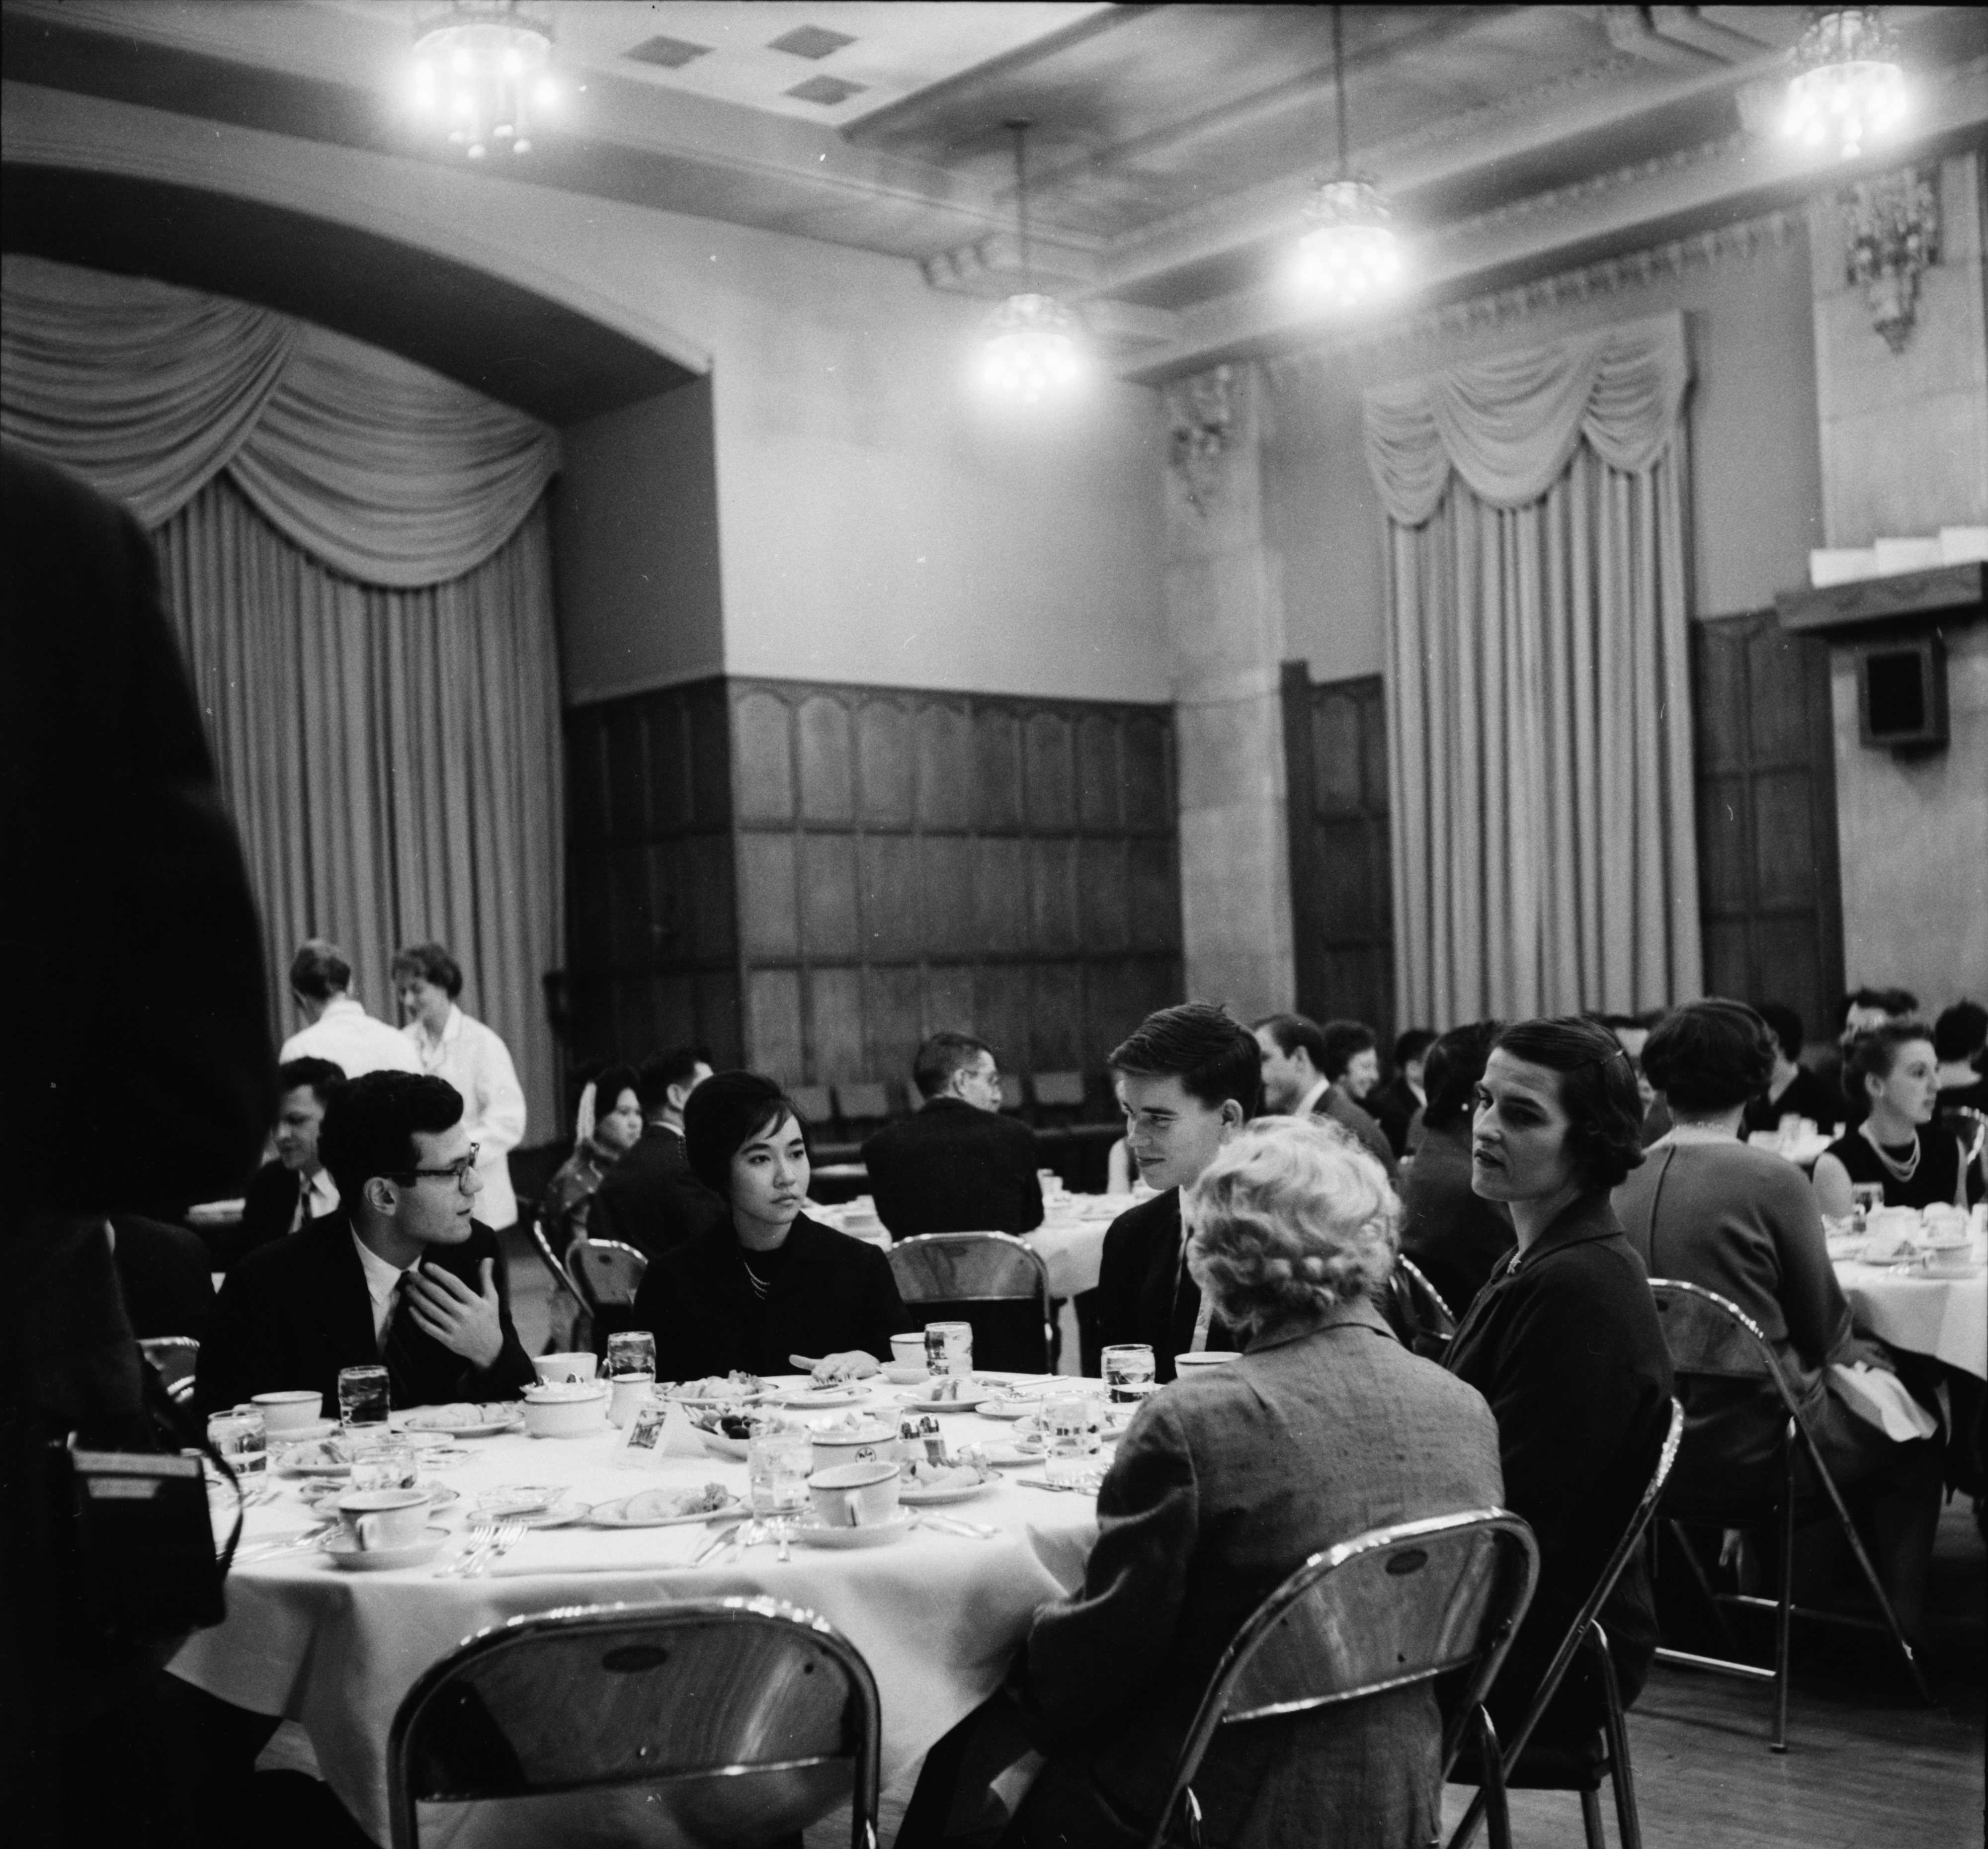 University of Michigan Peace Corps Banquet, January 1962 image